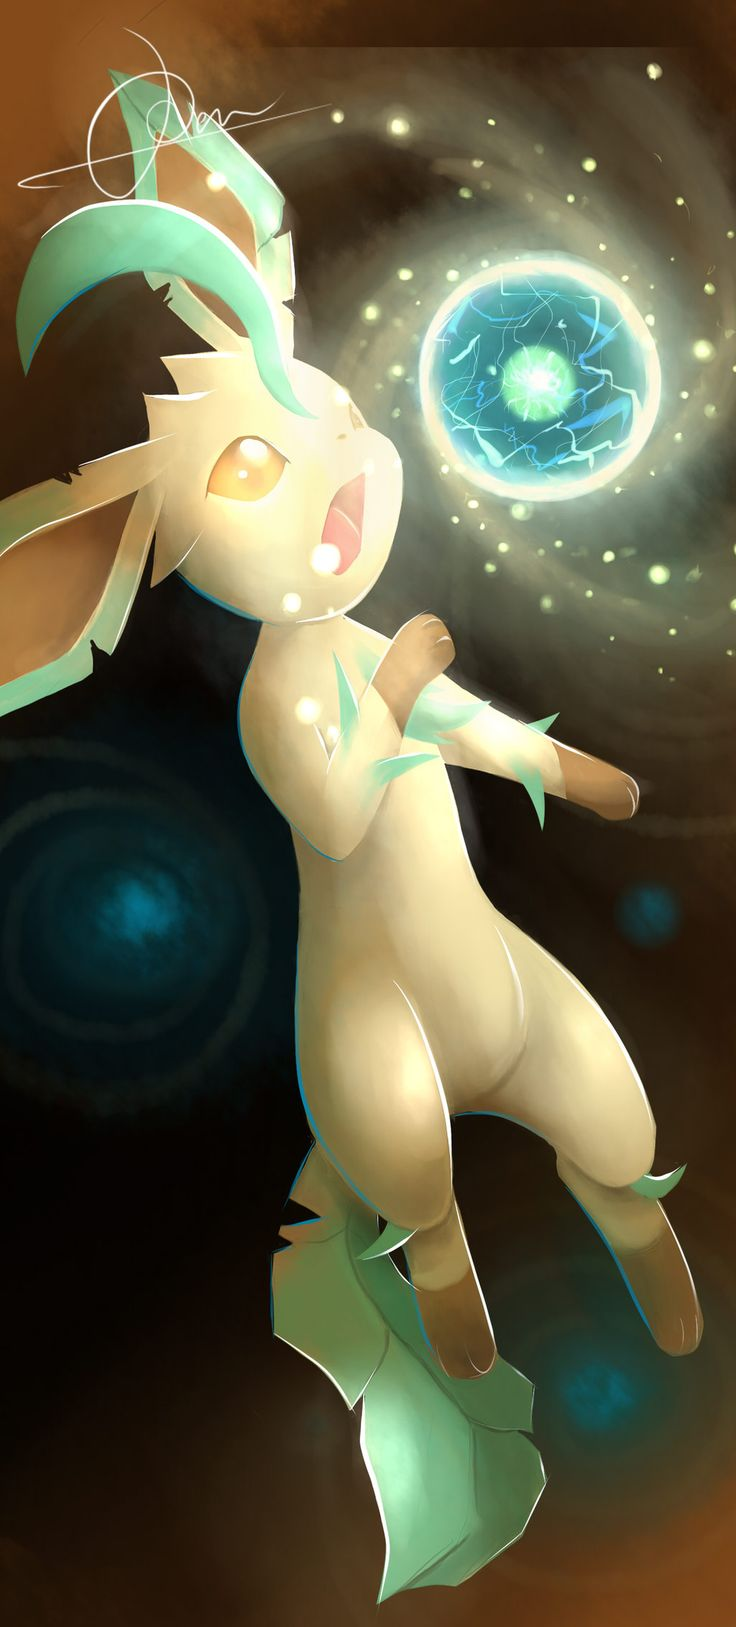 Cut through everything! The verdancy has arrived! by VulcanusKnight.deviantart.com on @deviantART (Leafeon)